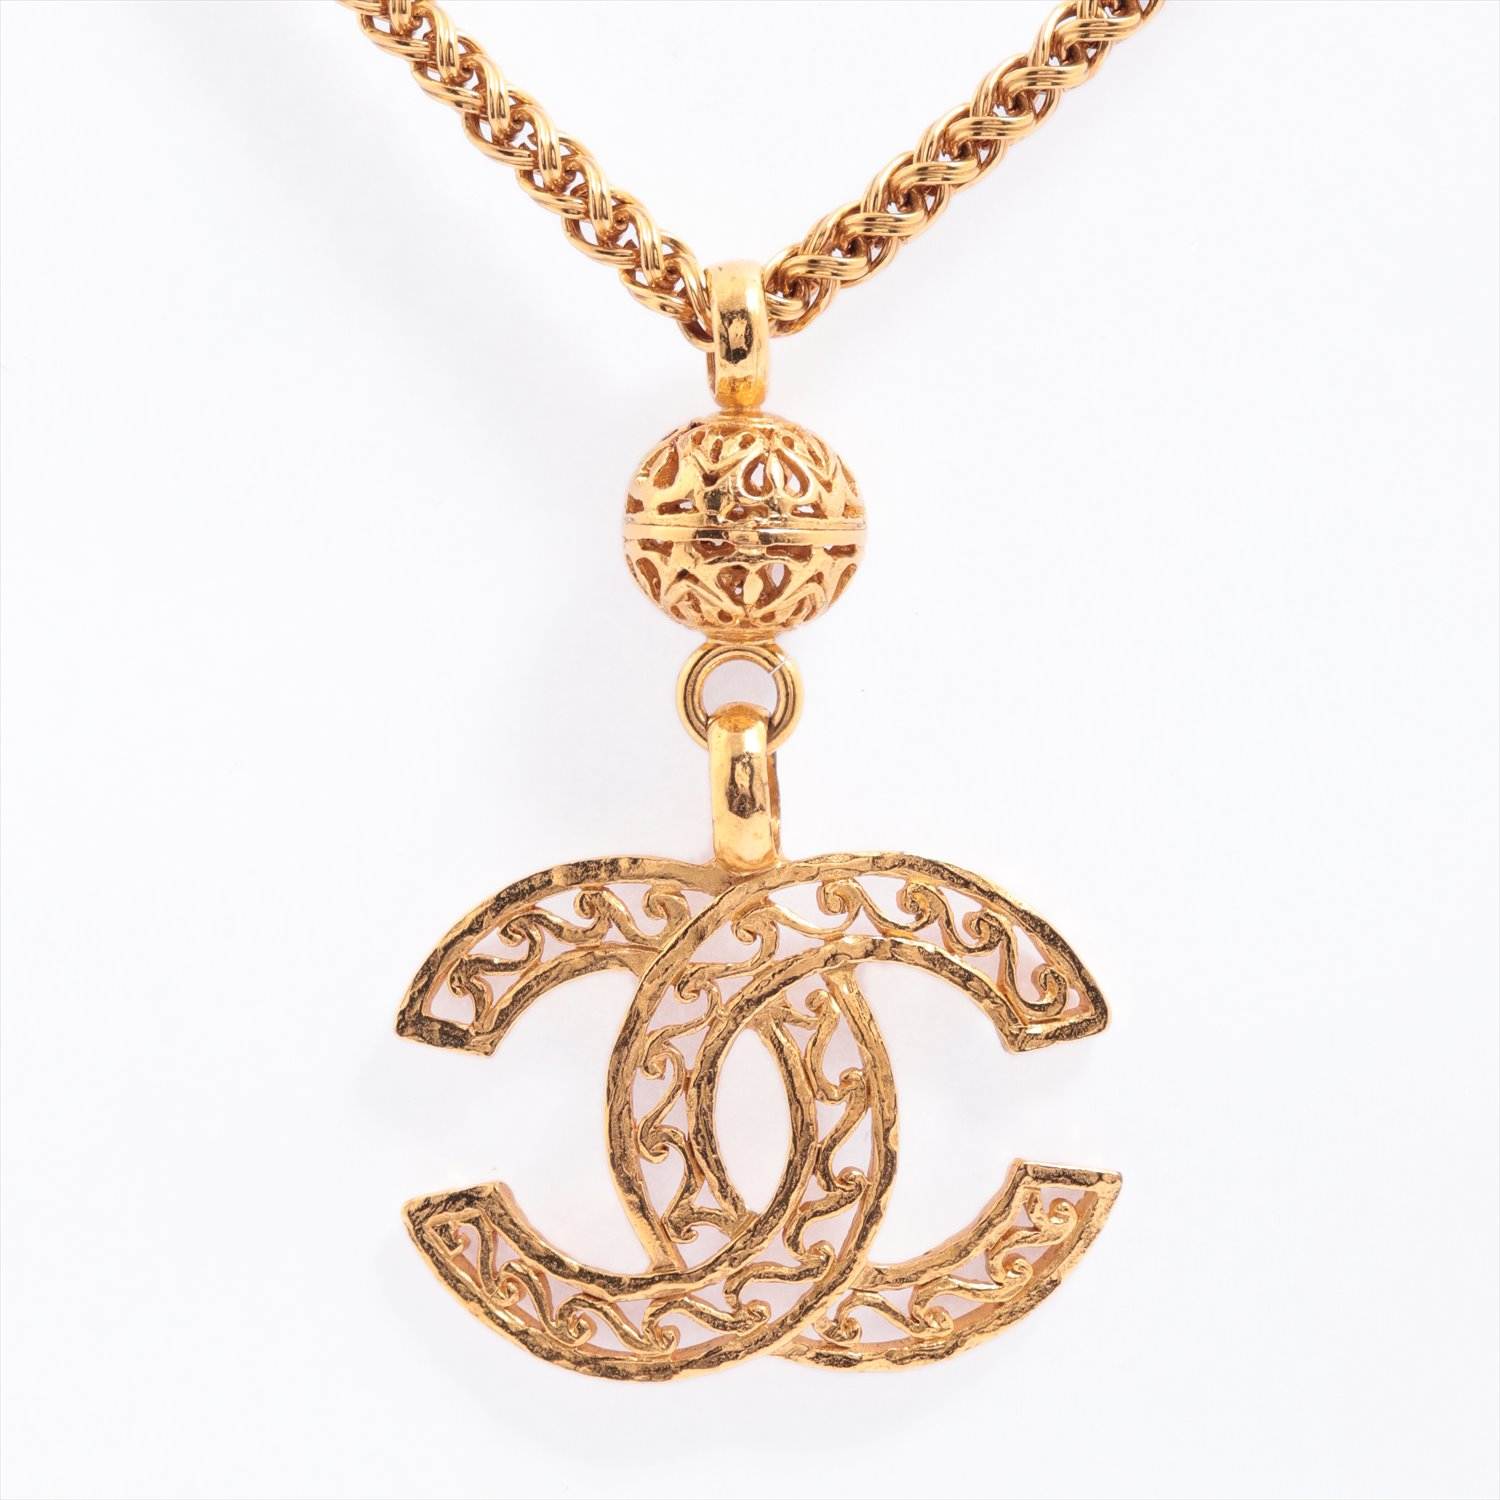 [Used goods] Chanel Coco mark necklace GP gold chain